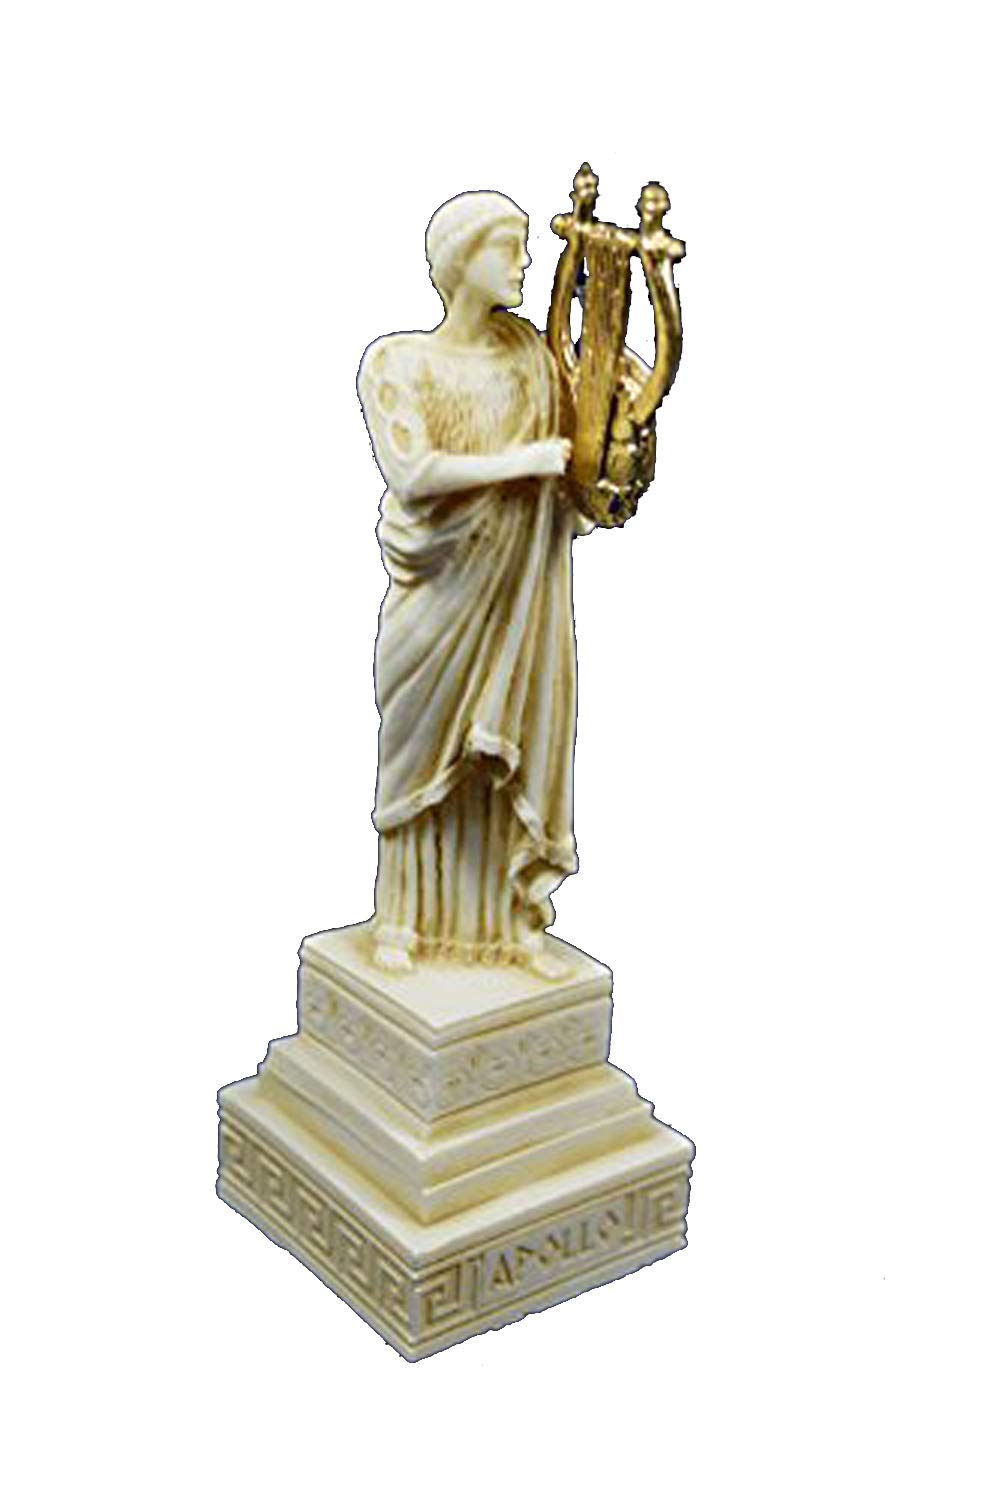 Estia Creations Apollo Sculpture God Statue Ancient Greek God Of Sun And Poetry Aged Buy Online In Dominica At Dominica Desertcart Com Productid 62959151